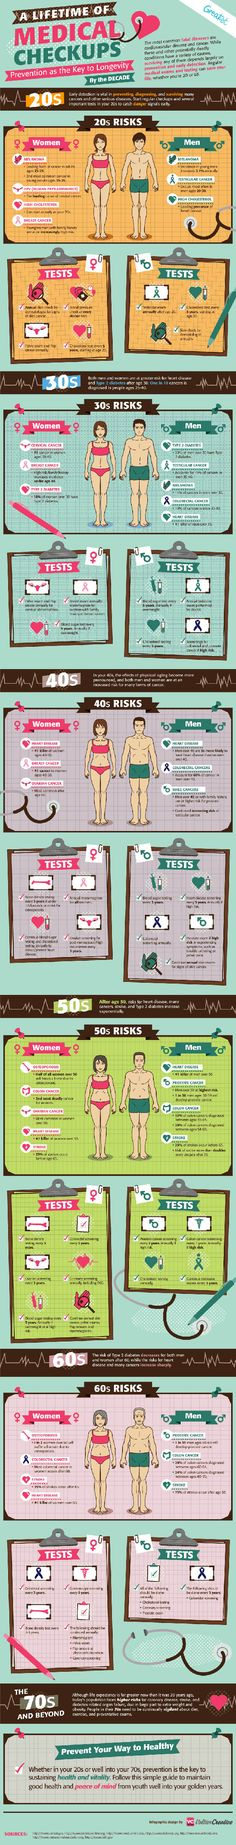 Scary Infographic Stats and Analysis You Might Not Heard Of | Wedding Photography Design